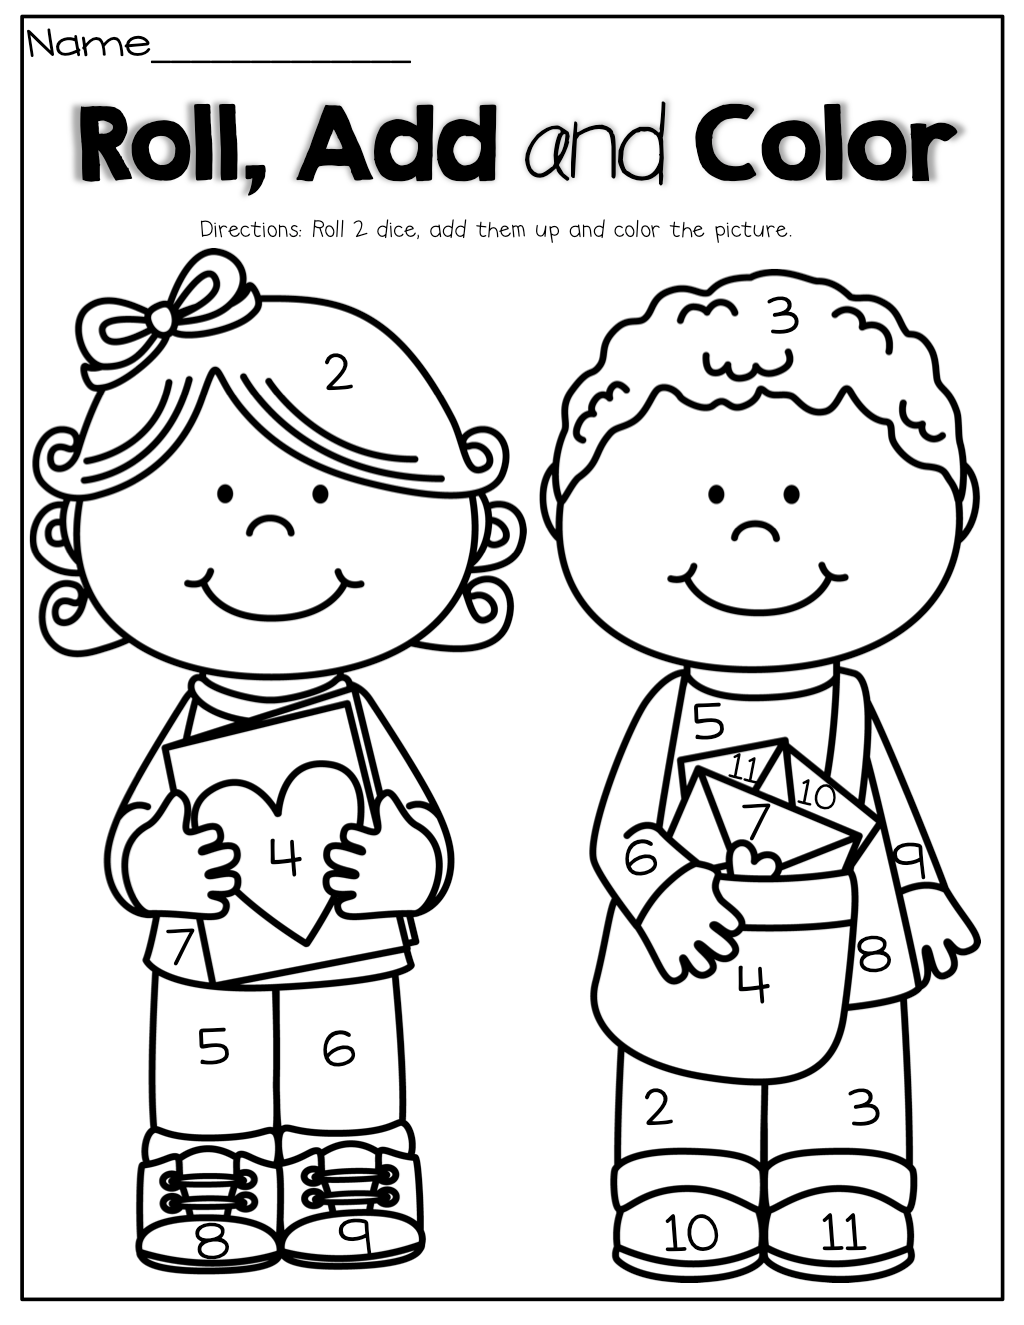 Roll Add And Color Roll 2 Dice Add Them Up And Color The Picture Fun Way To Practice Adding